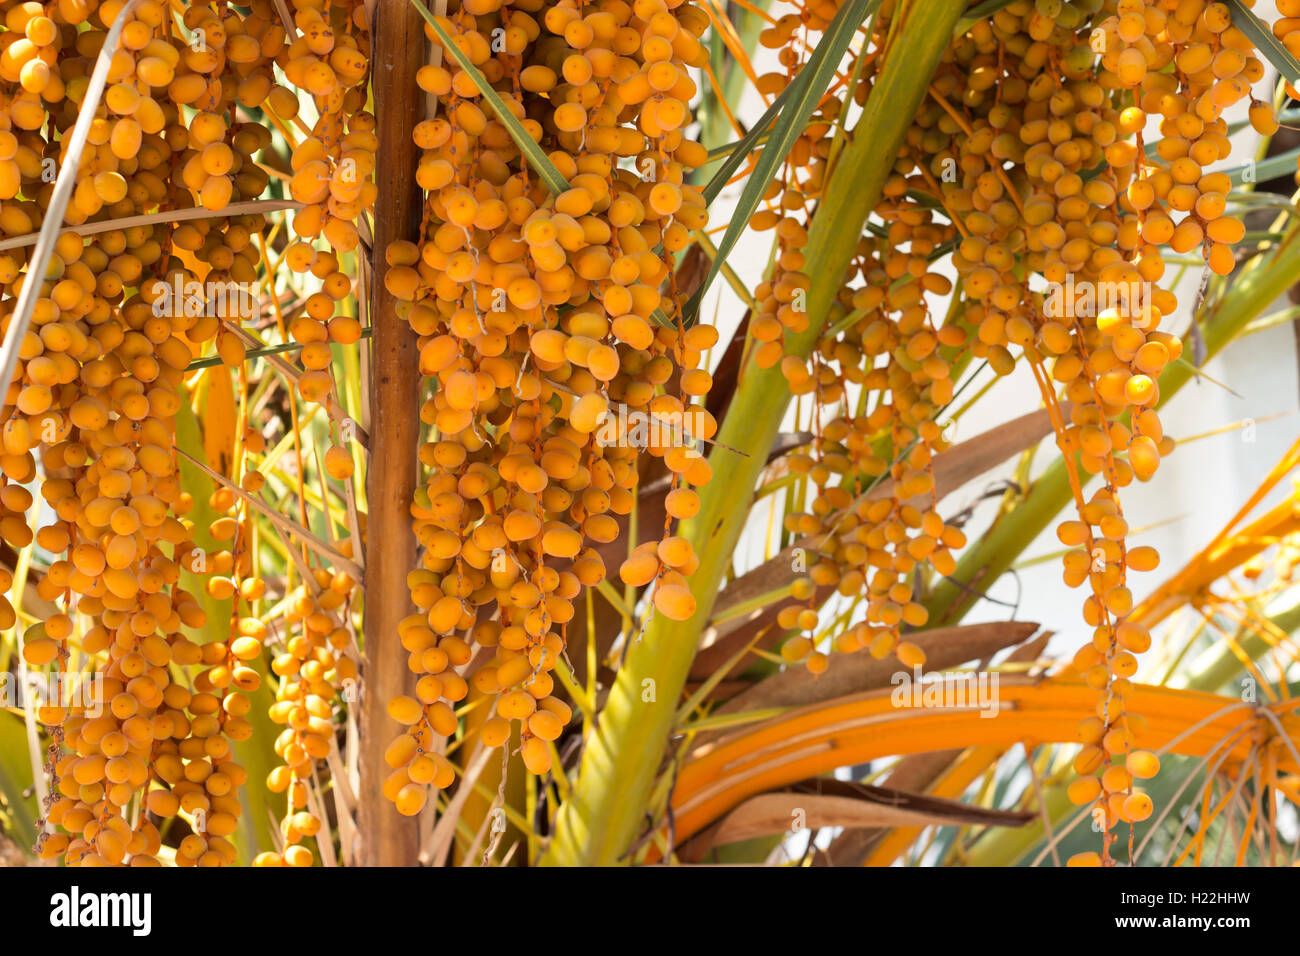 palm tree berries stock photos palm tree berries stock images alamy